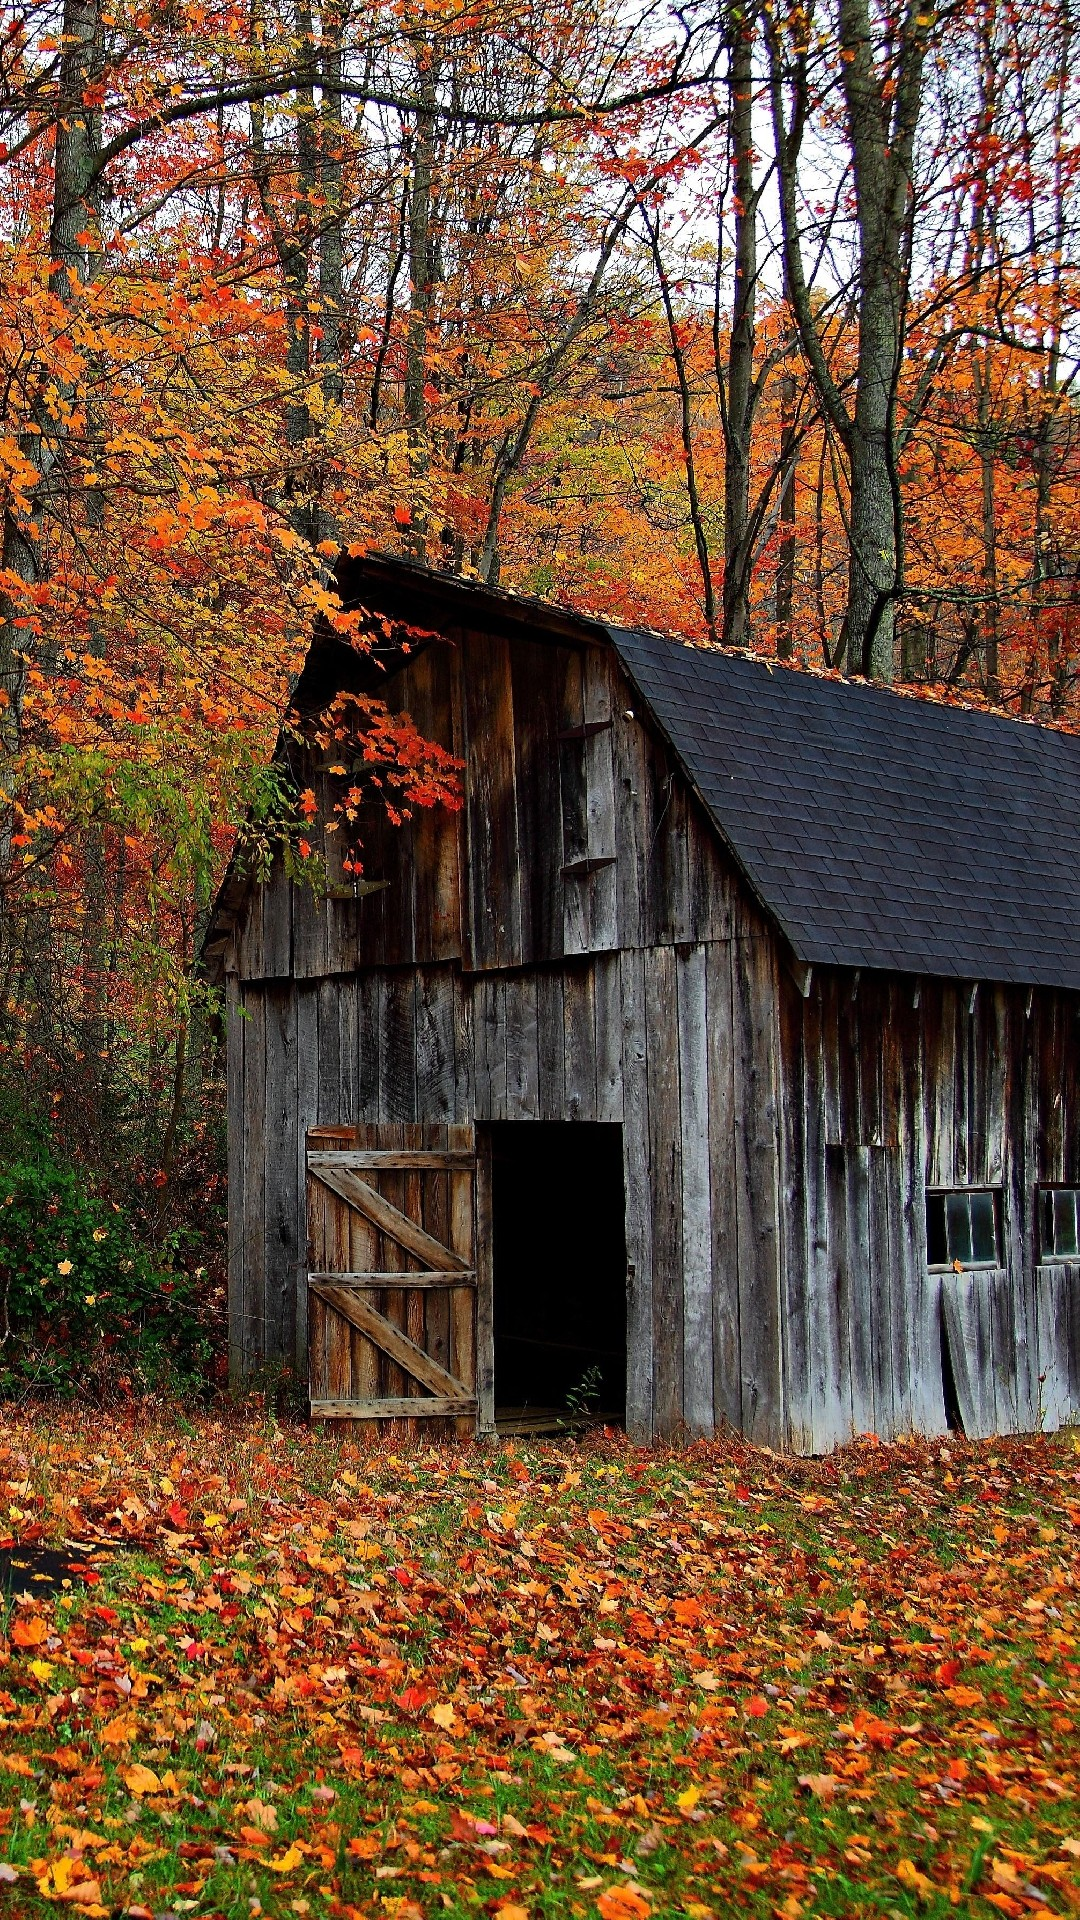 Iphone wallpaper Autumn cabin in the wood …